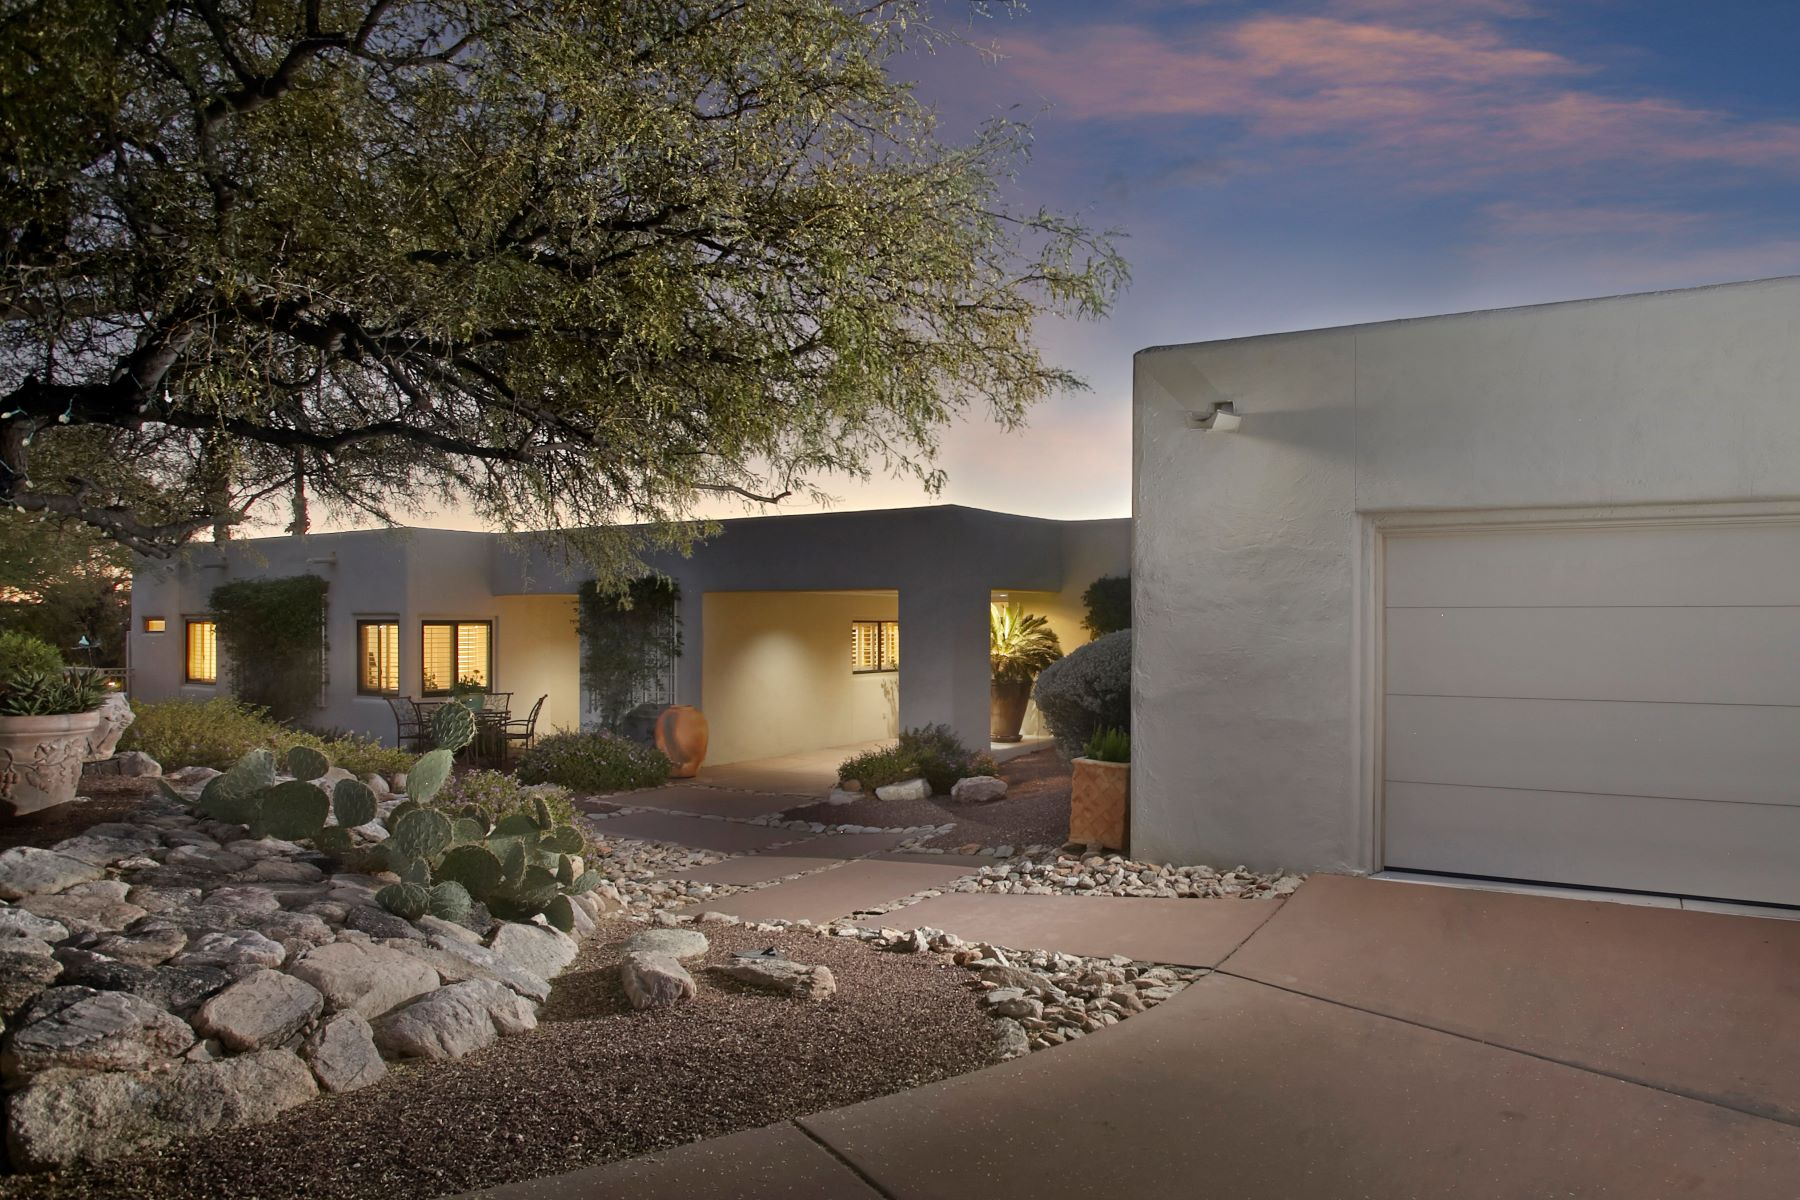 Single Family Home for Sale at Ideal Winter Residence in One of Tucson's Most Prestigious Neighborhoods 6851 N Terra Vista, Tucson, Arizona, 85750 United States